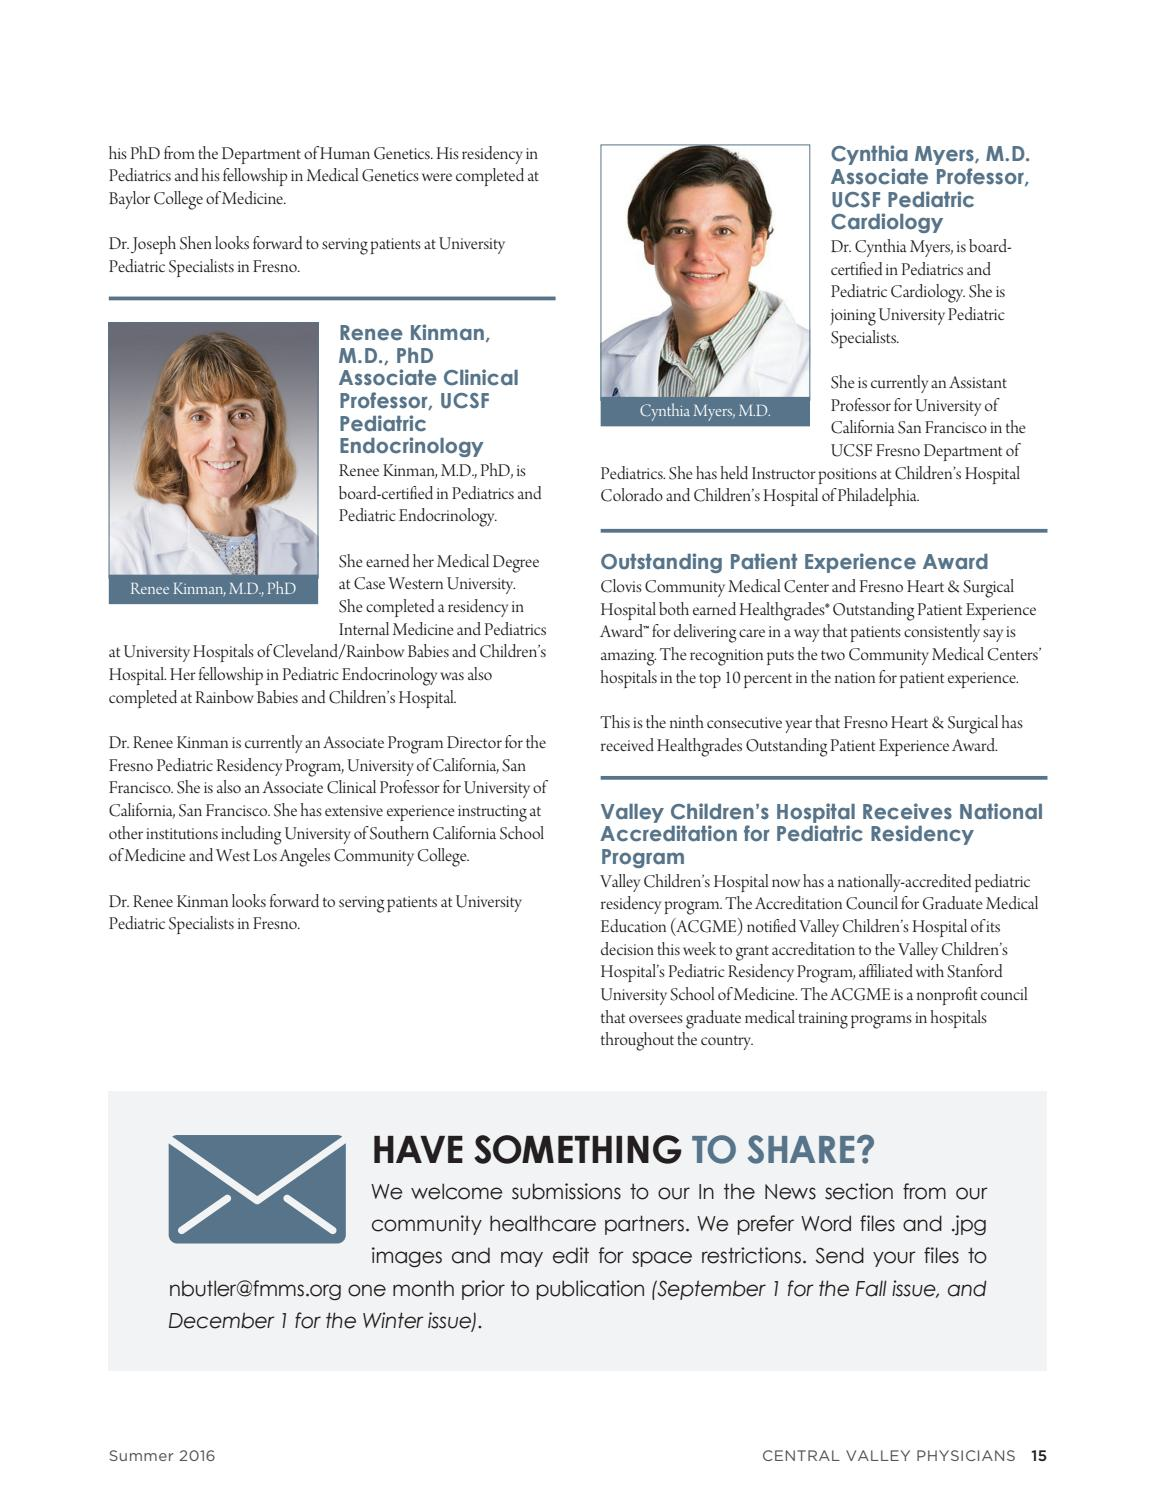 Central Valley Physicians by Fresno-Madera Medical Society - issuu